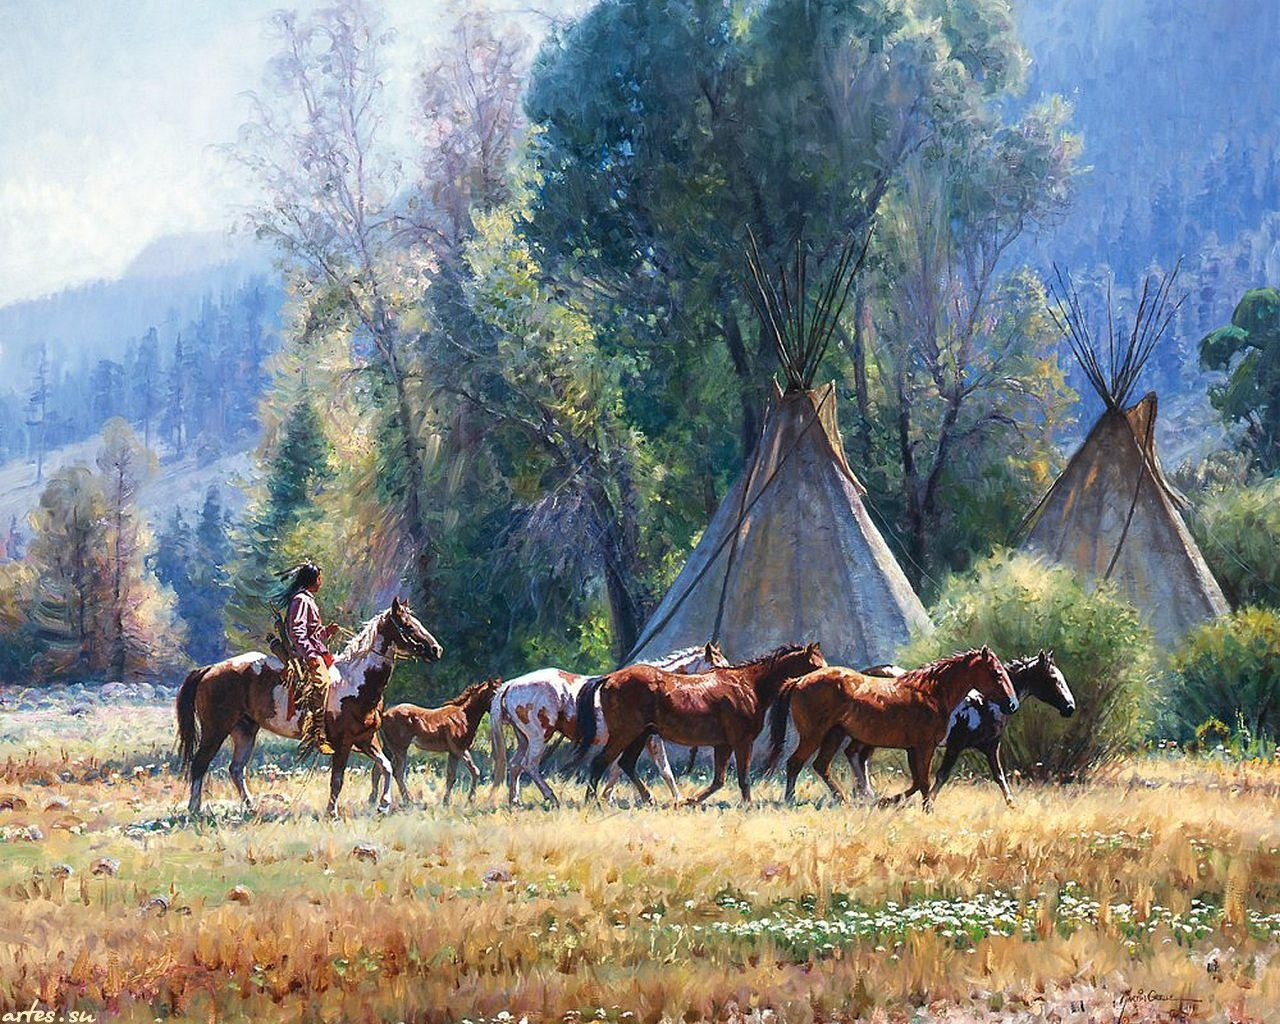 1280x1024 This brilliant piece of artwork, Empty Lodge, by Martin Grelle is a ...